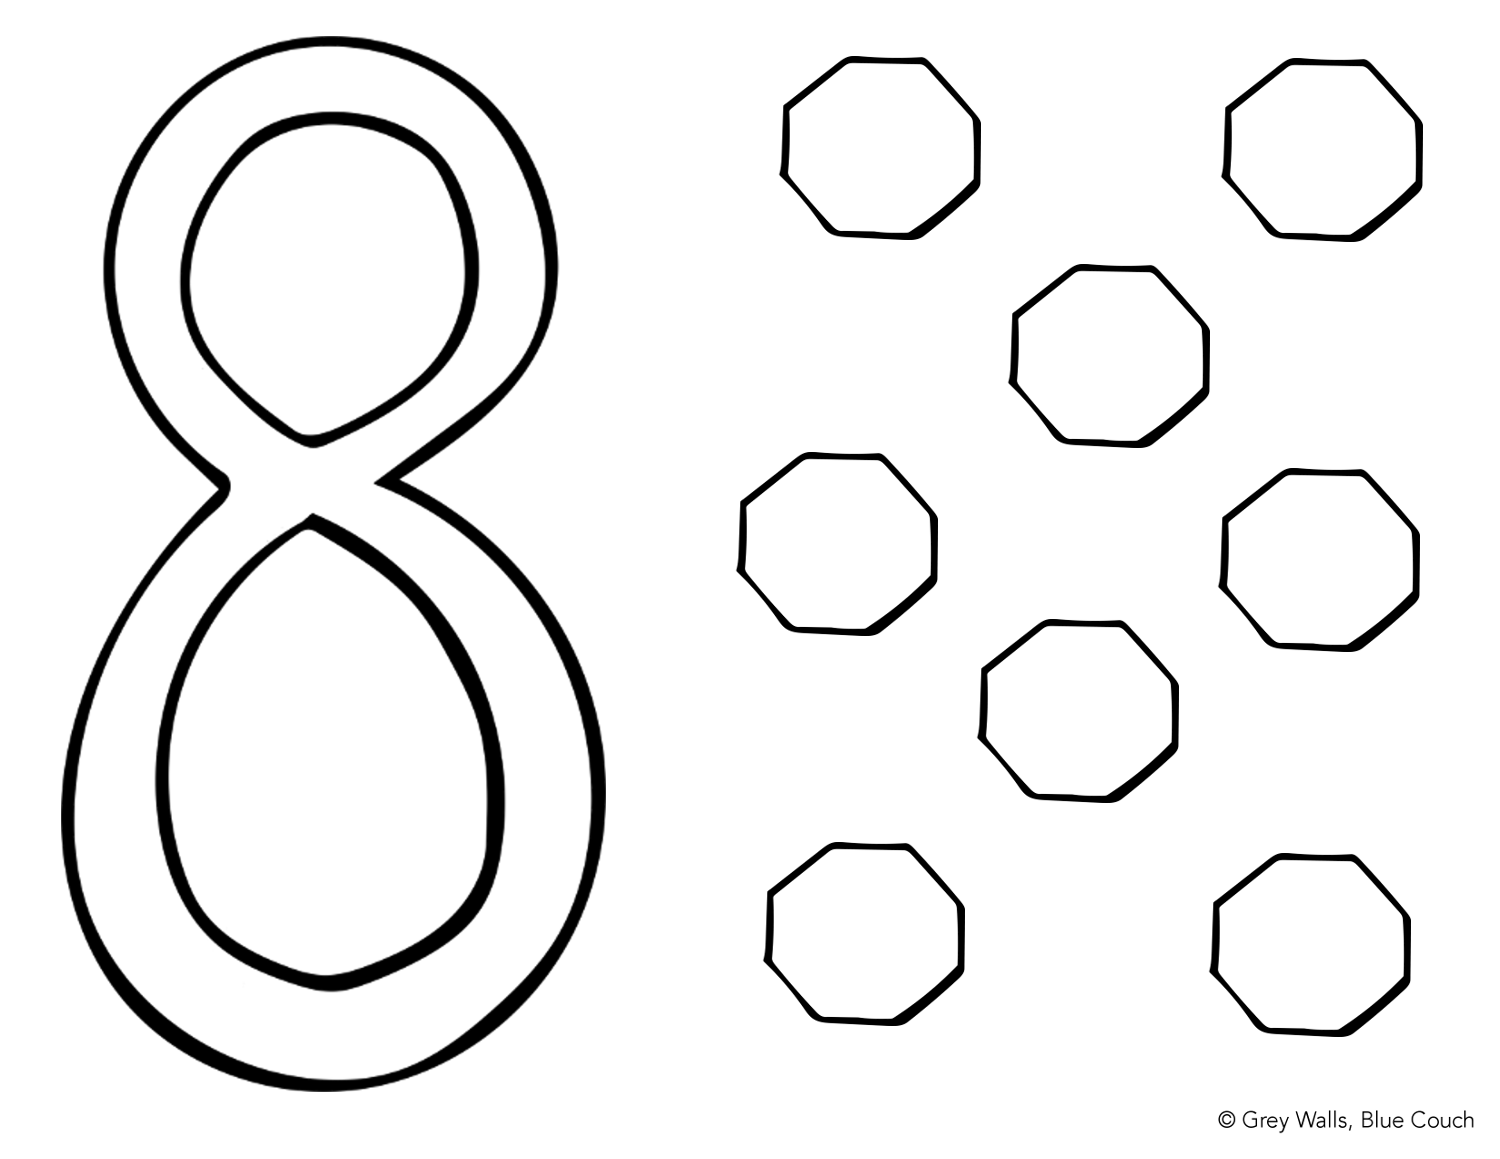 number 8 coloring pages number 8 coloring page free download on clipartmag 8 number coloring pages